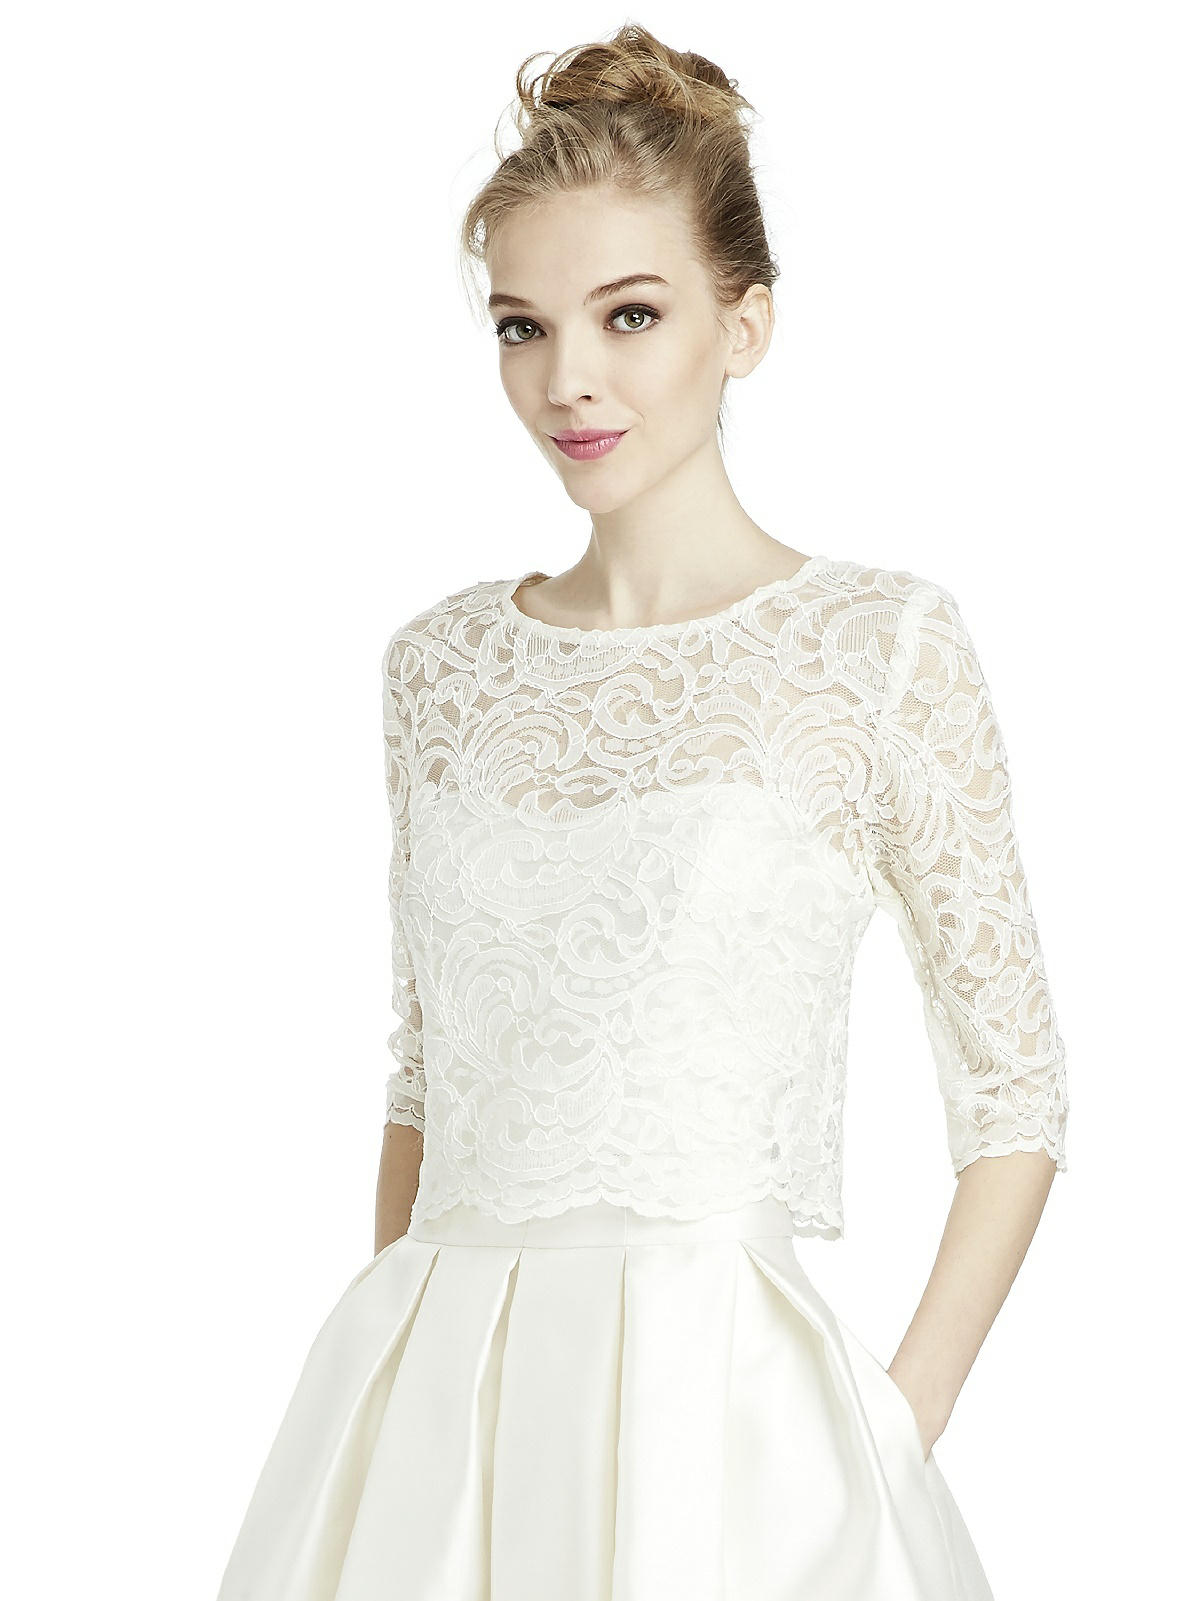 lace top for bridal gown